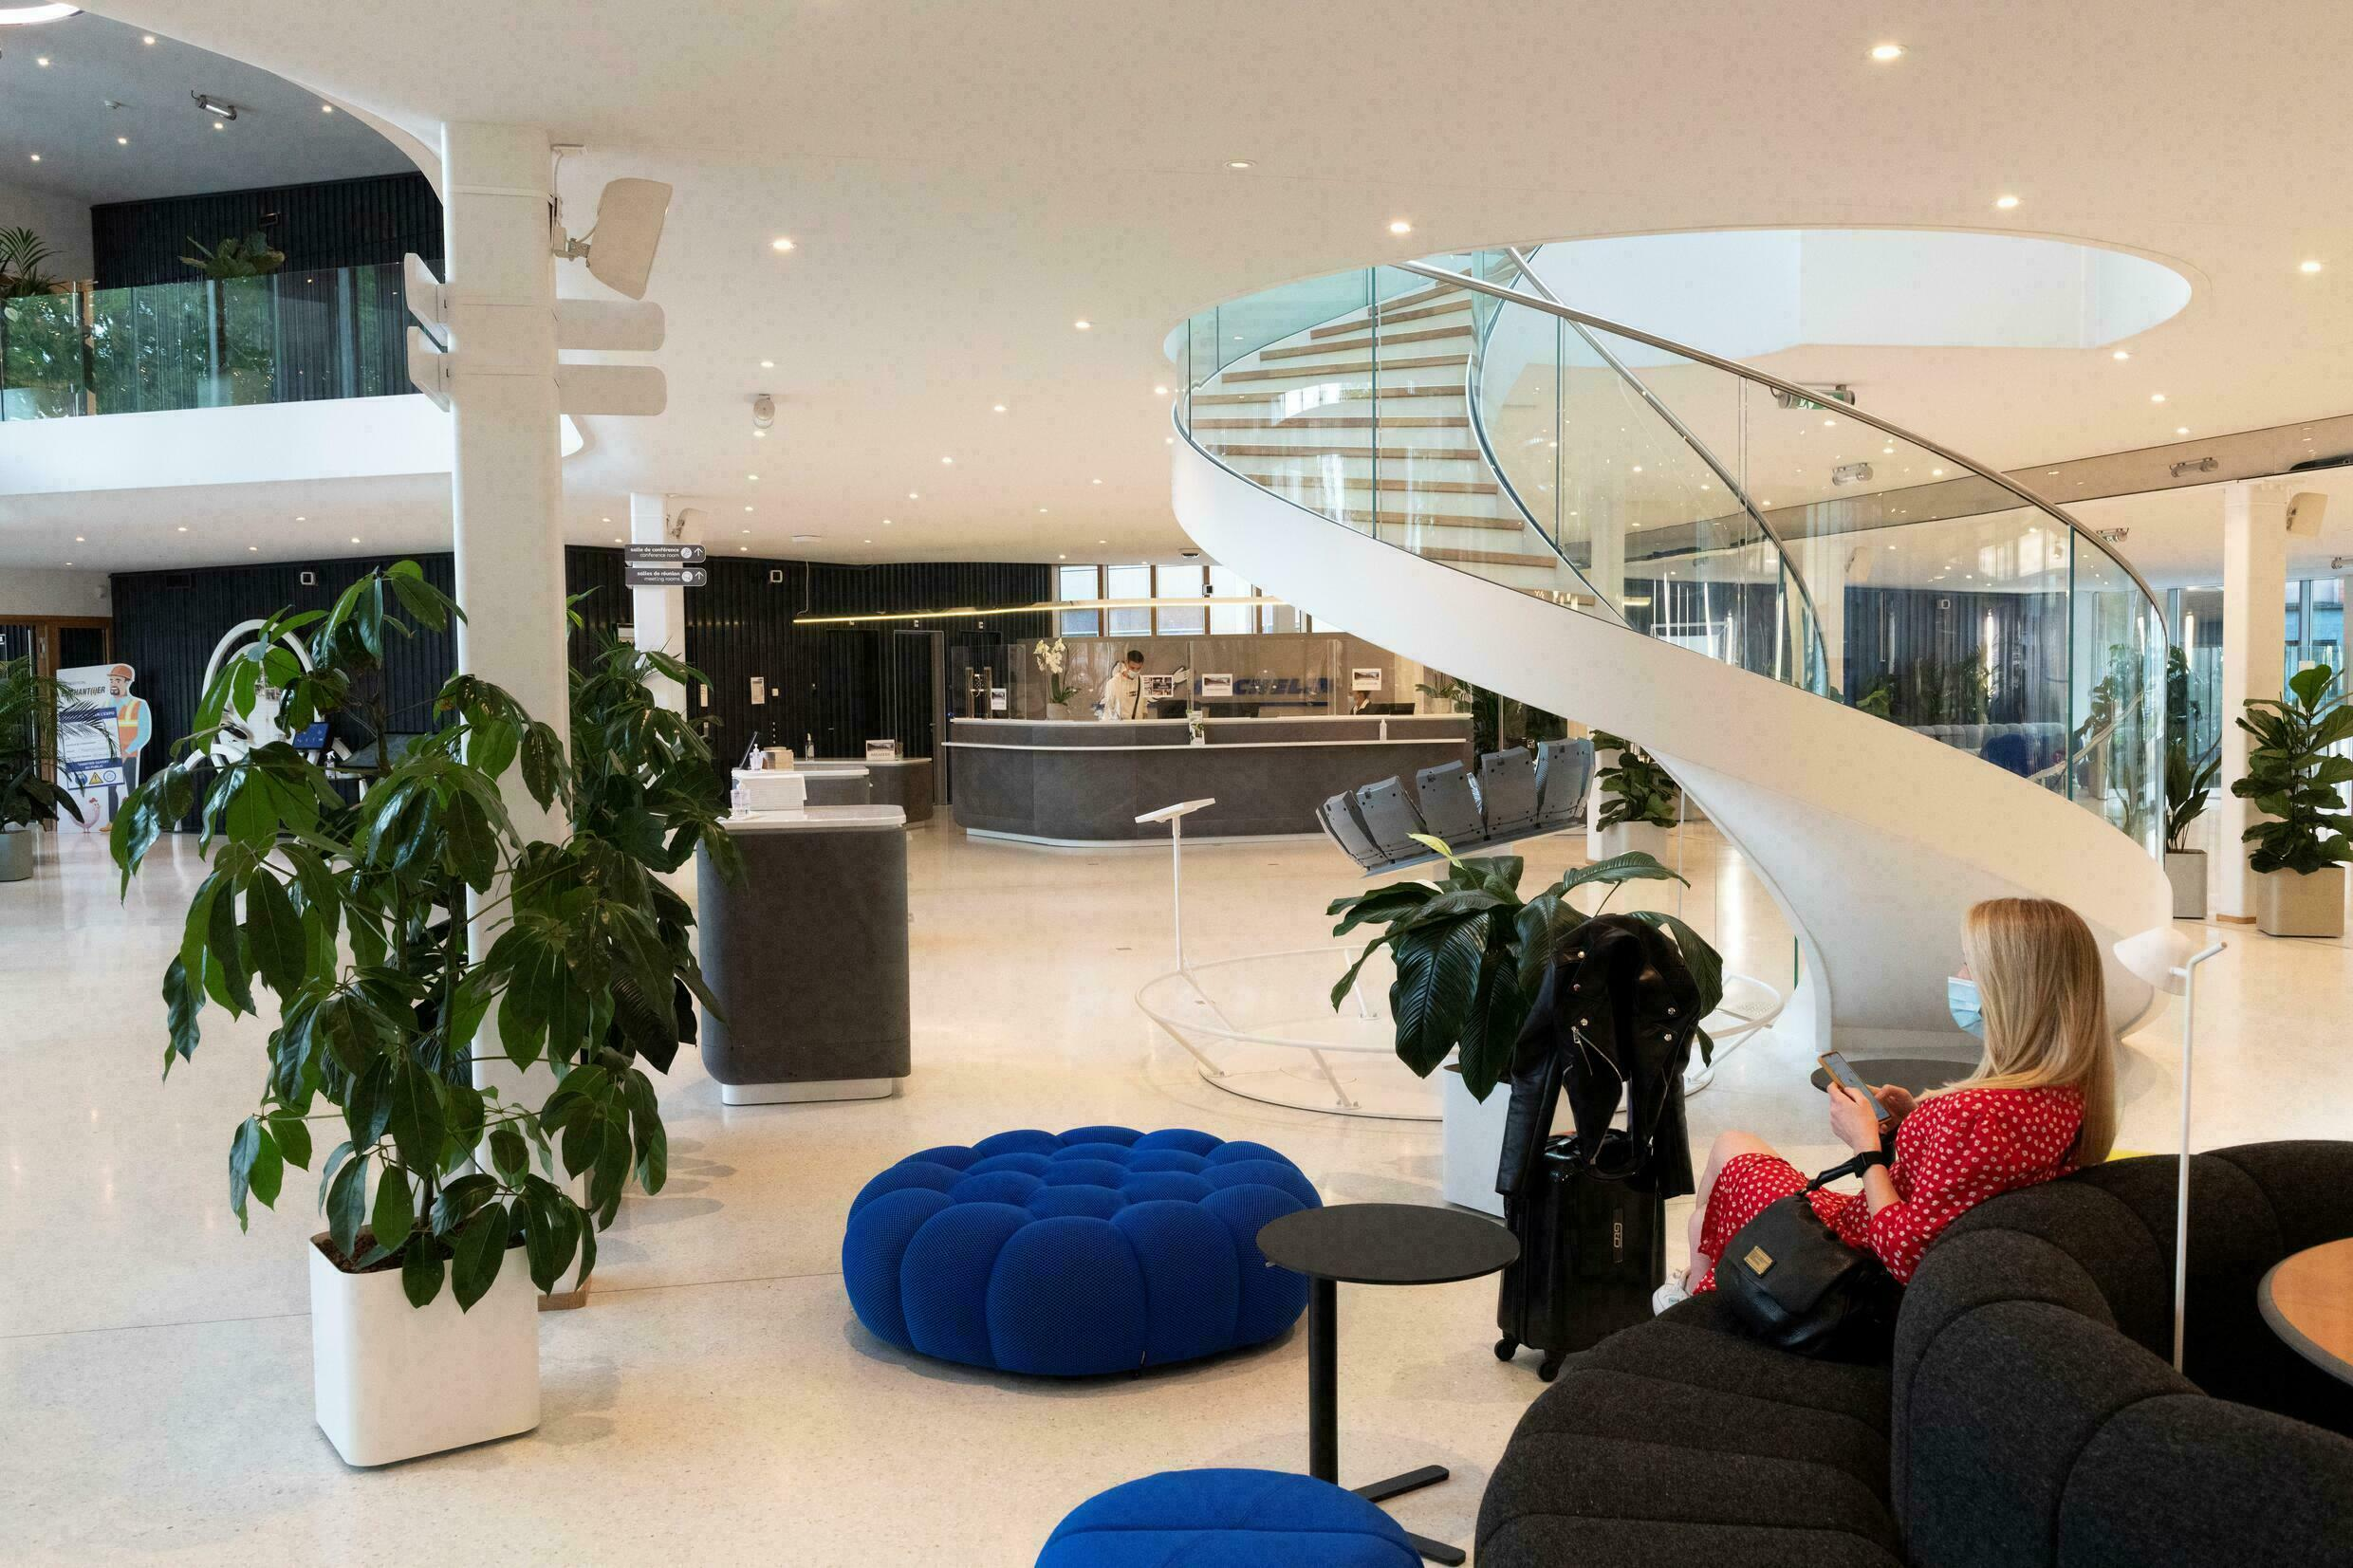 The reception hall of the renovated Michelin headquarters, September 9, 2021 in Clermont-Ferrand